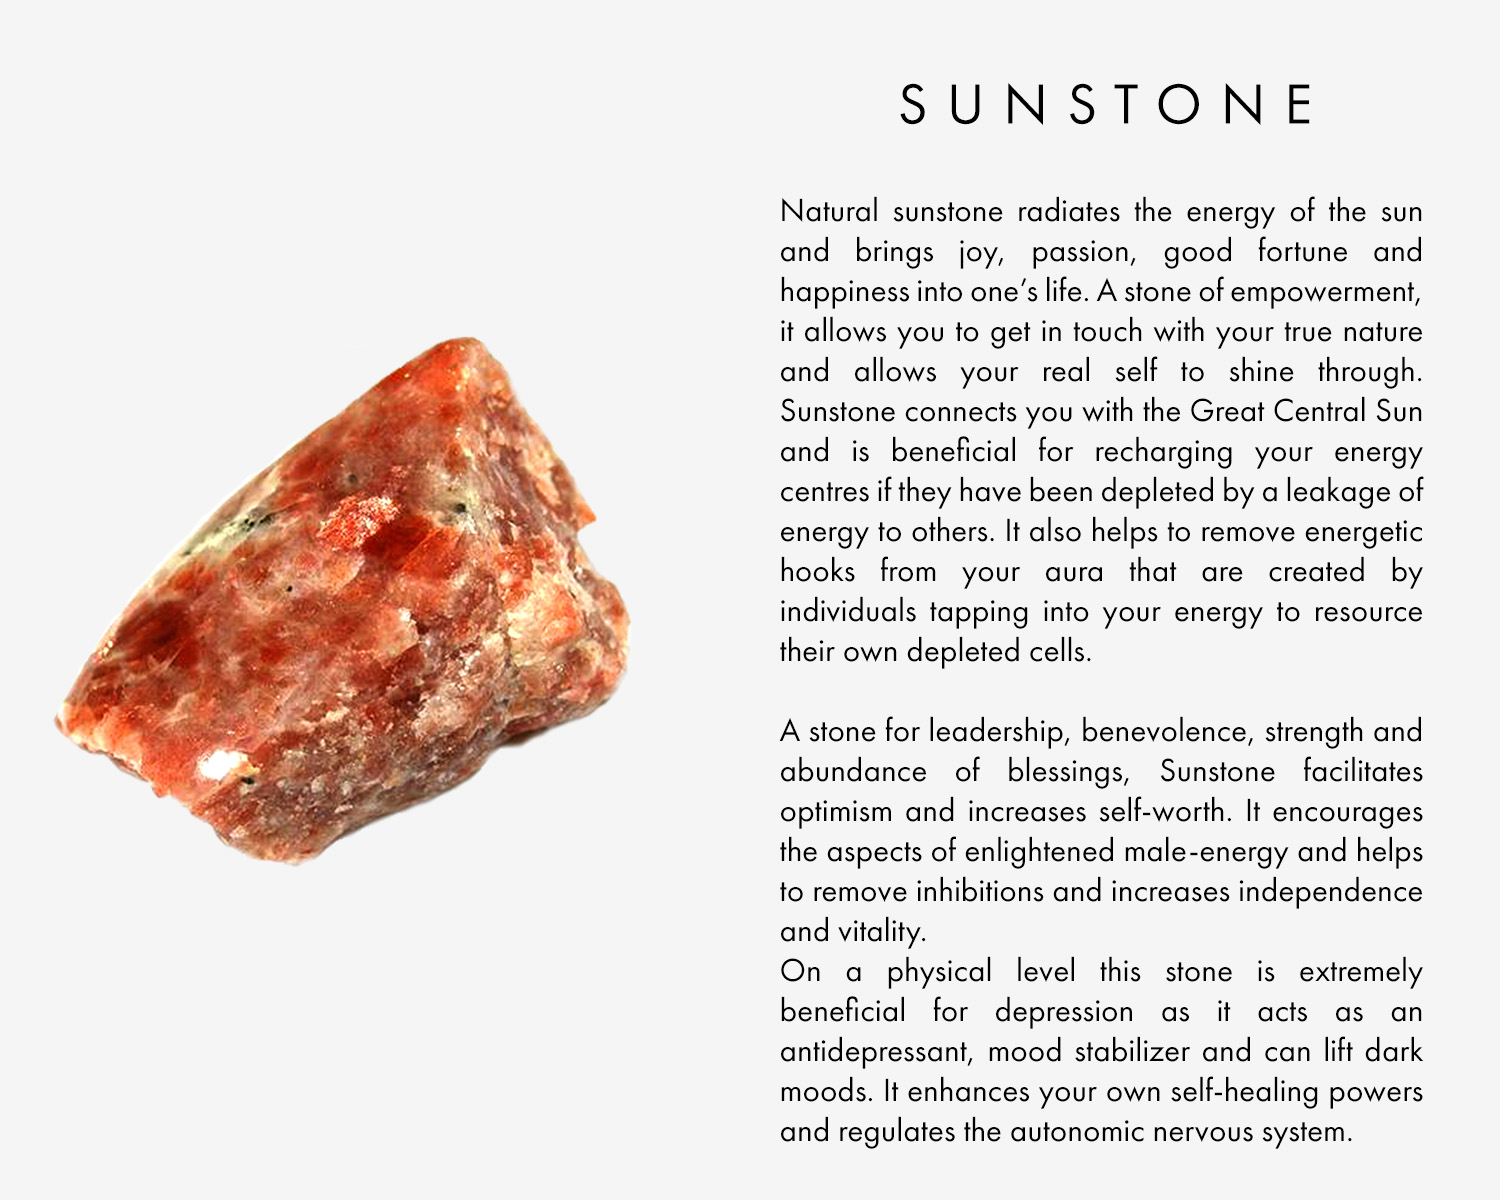 Natural sunstone radiates the energy of the sun and brings joy, passion, good fortune and happiness into one's life. A stone of empowerment, it allows you to get in touch with your true nature and allows your real self to shine through. Sunstone connects you with the Great Central Sun and is beneficial for recharging your energy centres if they have been depleted by a leakage of energy to others. It also helps to remove energetic hooks from your aura that are created by individuals tapping into your energy to resource their own depleted cells.  A stone for leadership, benevolence, strength and abundance of blessings, Sunstone facilitates optimism and increases self-worth. It encourages the aspects of enlightened male-energy and helps to remove inhibitions and increases independence and vitality.  On a physical level this stone is extremely beneficial for depression as it acts as an antidepressant, mood stabilizer and can lift dark moods. It enhances your own self-healing powers and regulates the autonomic nervous system.